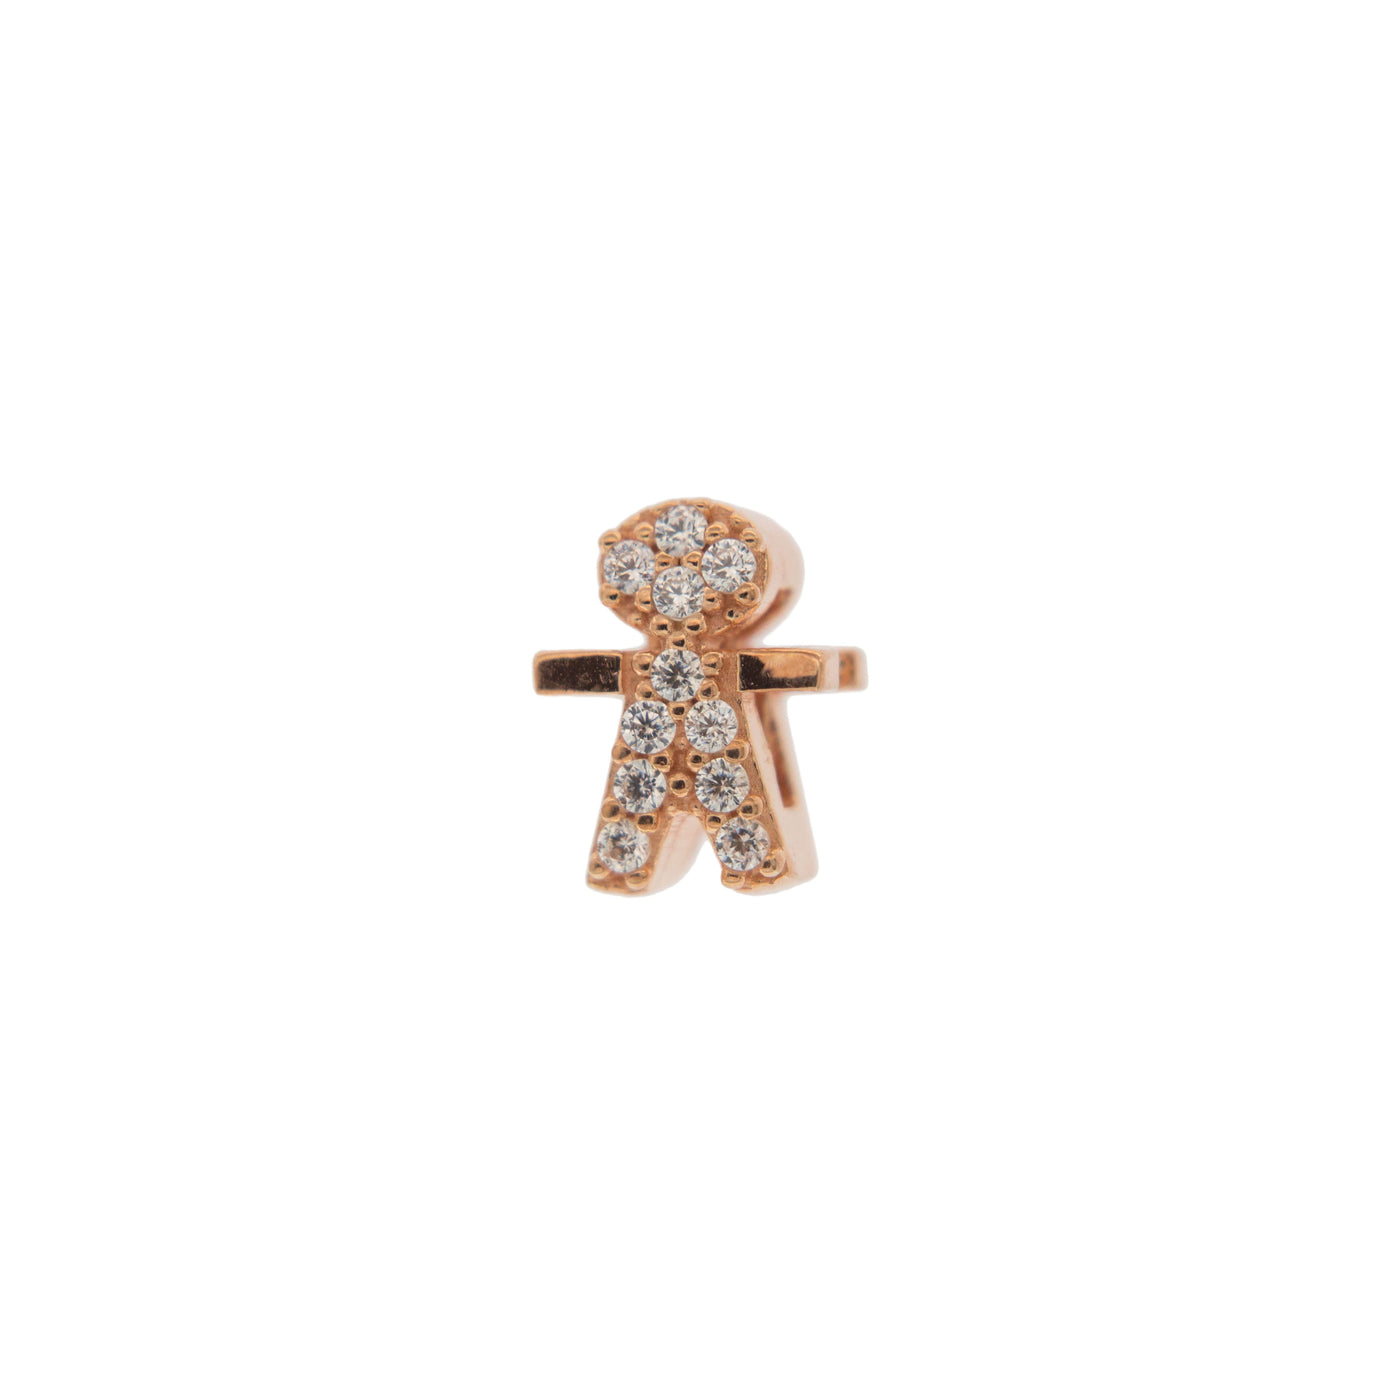 Moments - Moment Little Boy with Zircon for Carousel Bracelet and Choker - 1 | Rue des Mille